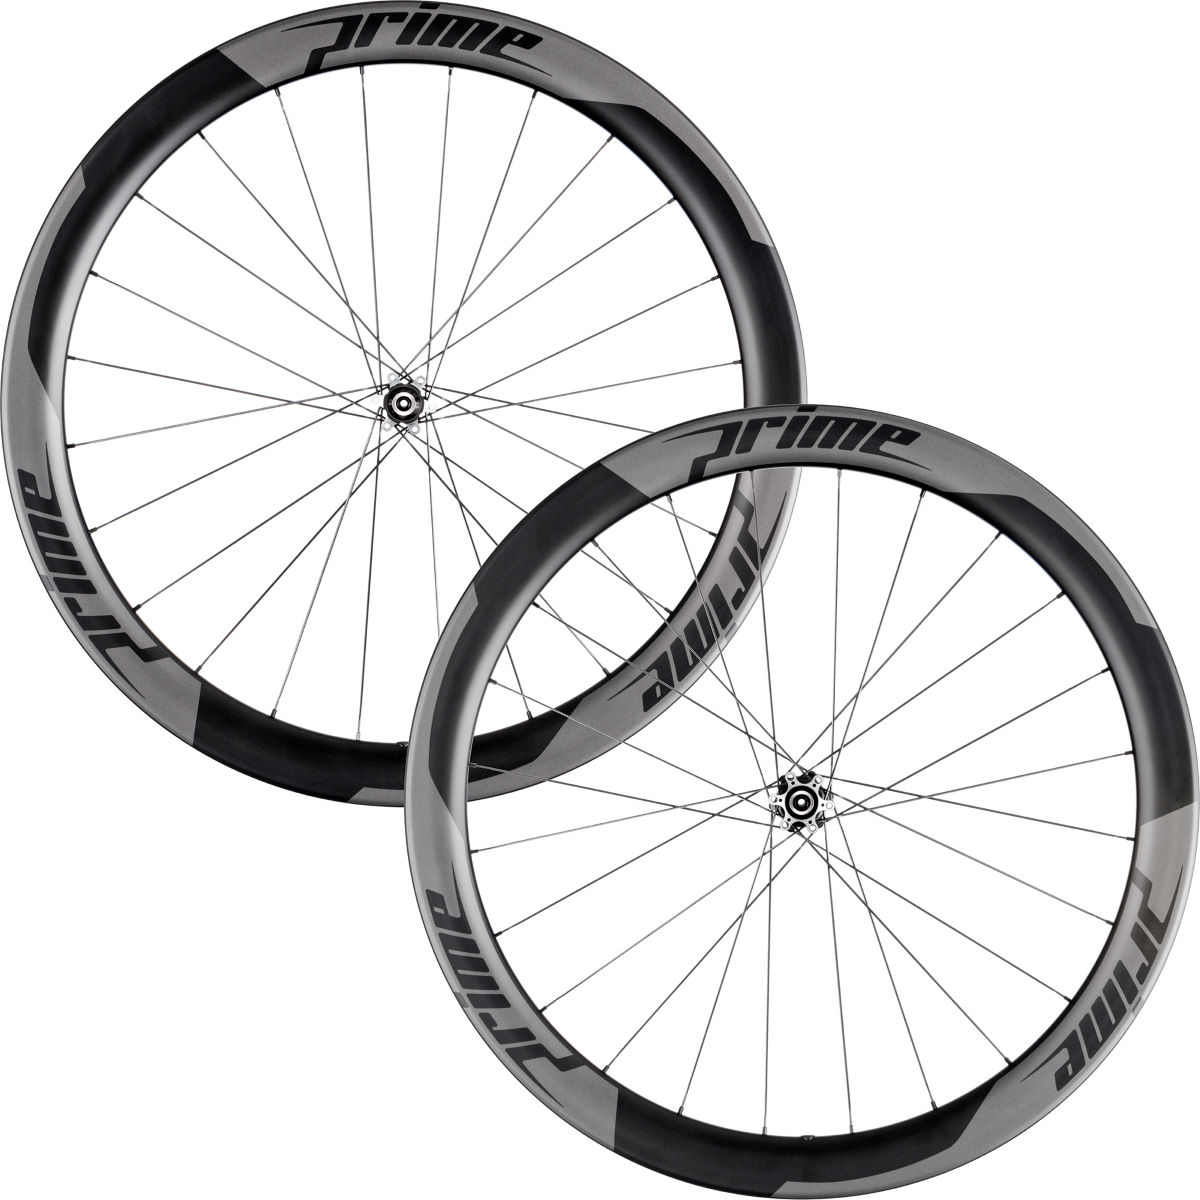 Prime RP-50 Carbon Clincher Disc Road Wheelset - 700c Shimano/SRAM Black Decal Roues performance